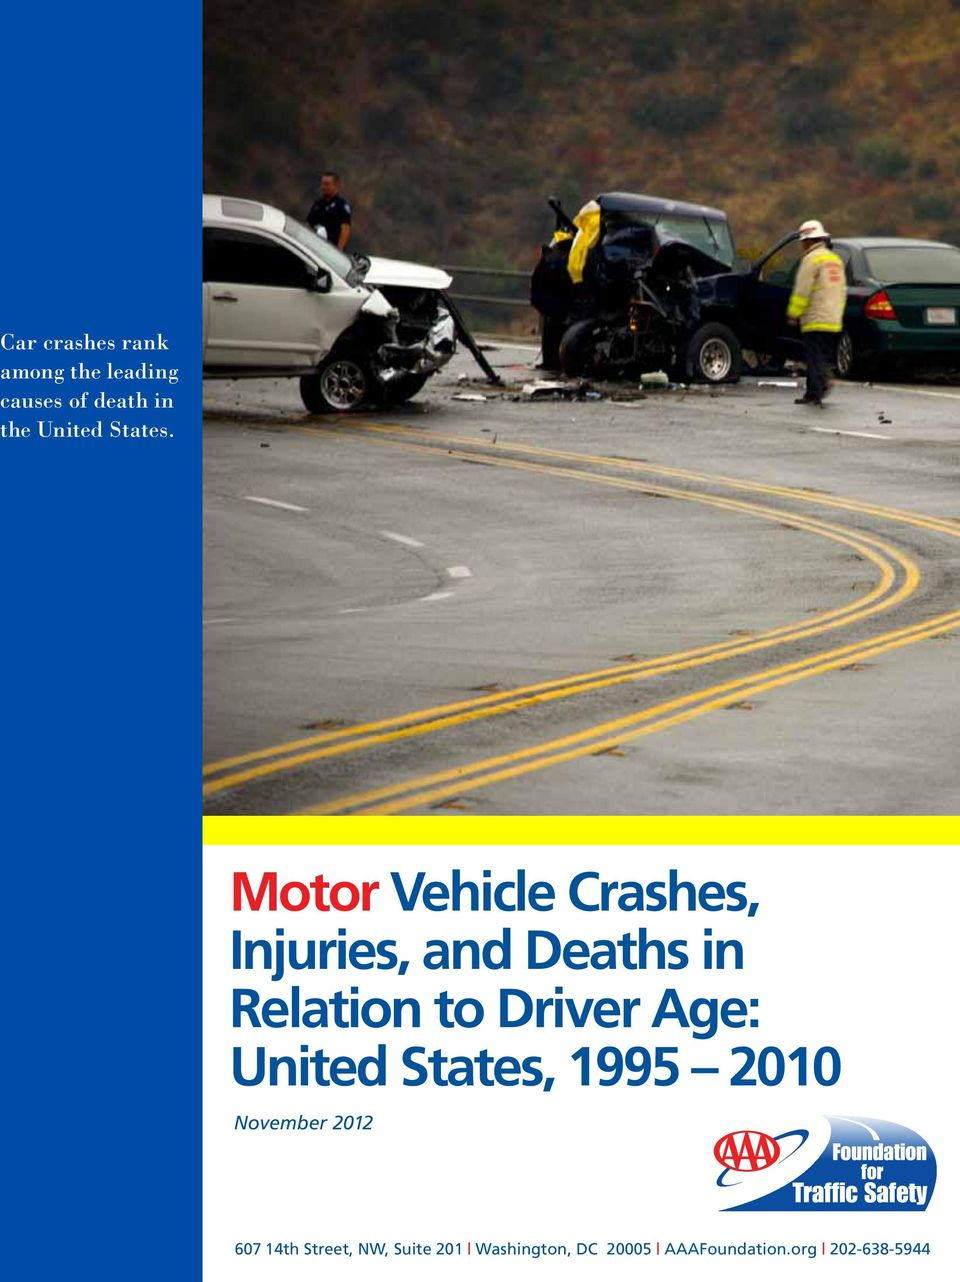 Motor Vehicle Crashes, Injuries, and Deaths in Relation to Driver